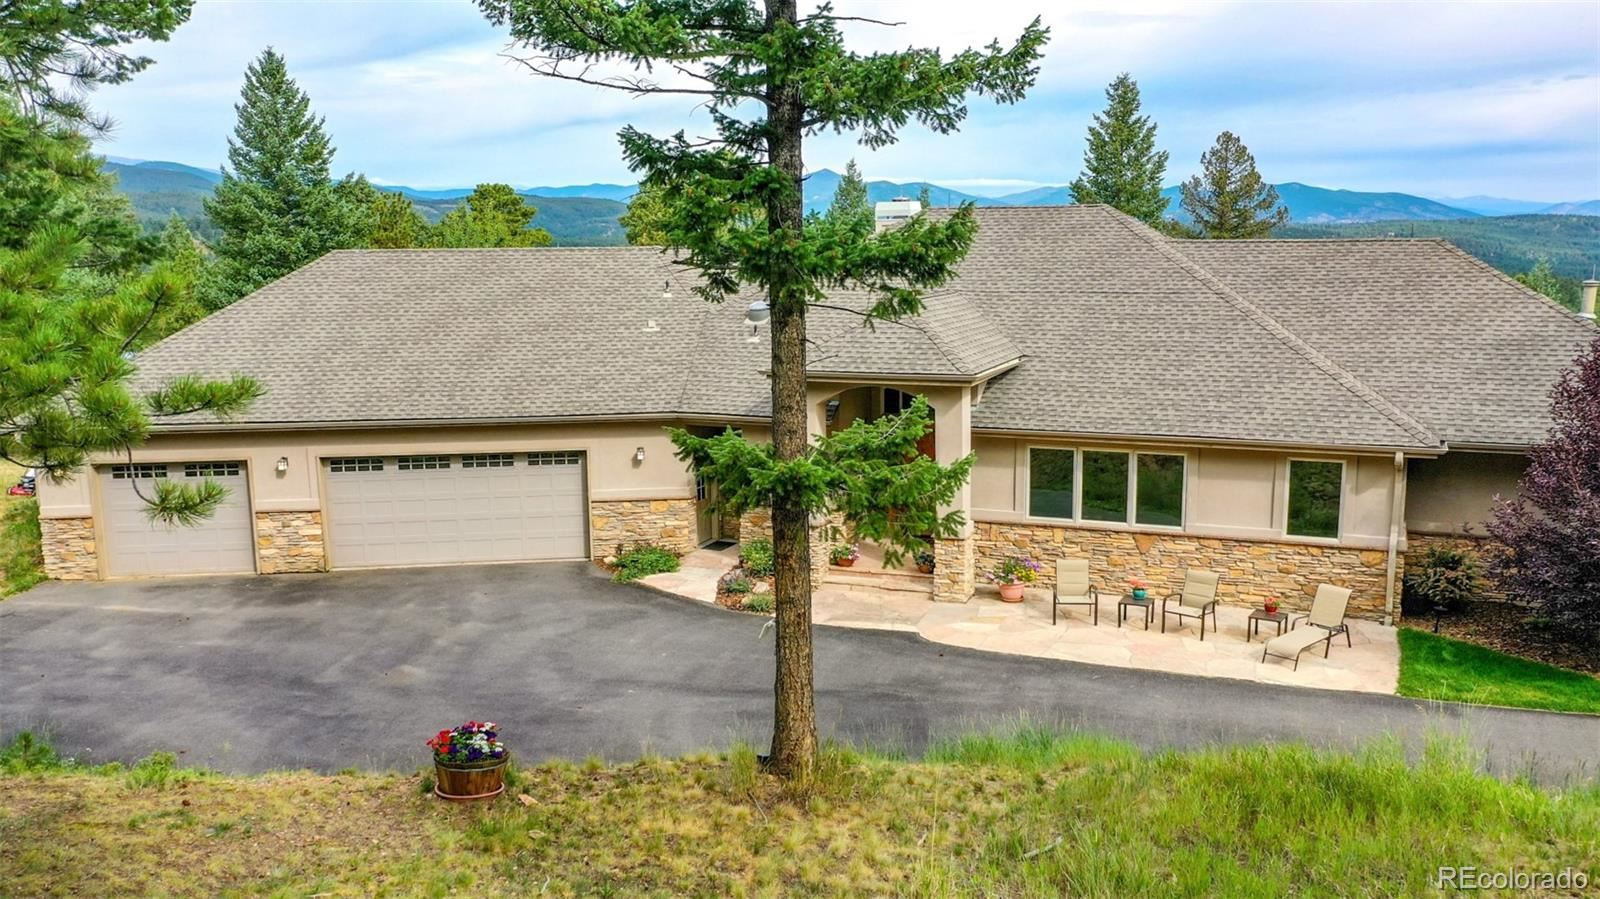 26886 Evergreen Springs Road, Evergreen, CO 80439 - #: 2423206